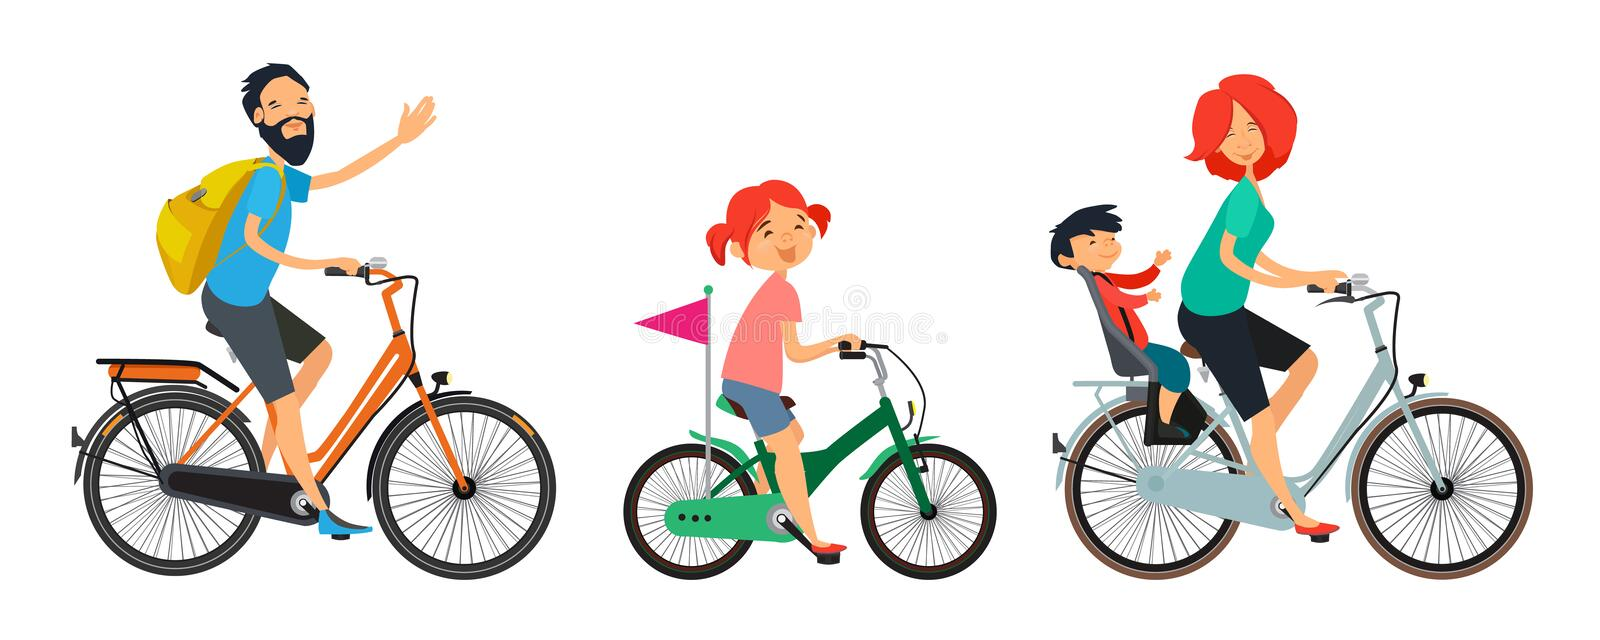 Family on bicycles walk. Male and female riding on bike royalty free illustration